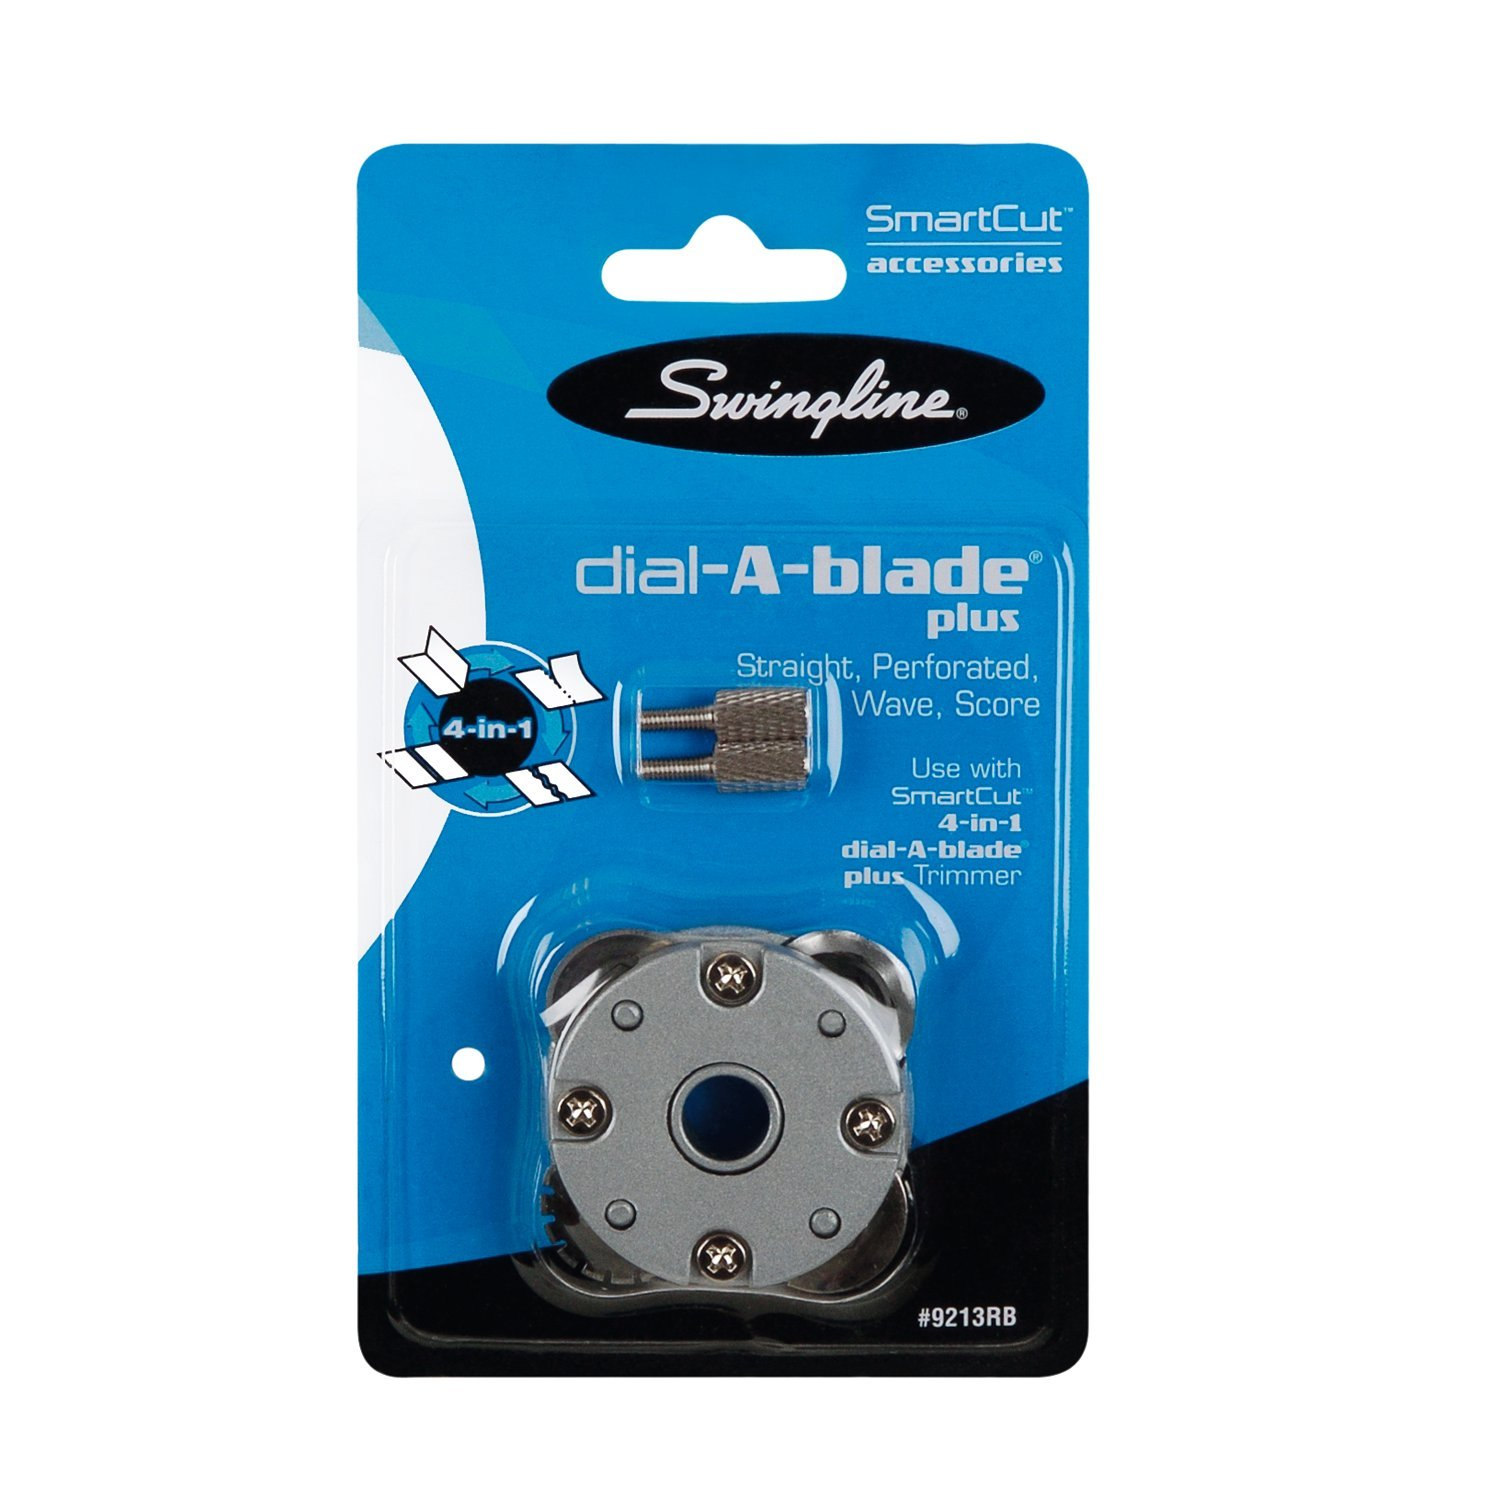 Swingline Paper Trimmer Replacement Blade, for SmartCut 4-in-1 Dial-A-Blade Plus Rotary Trimmer (9213RBA)